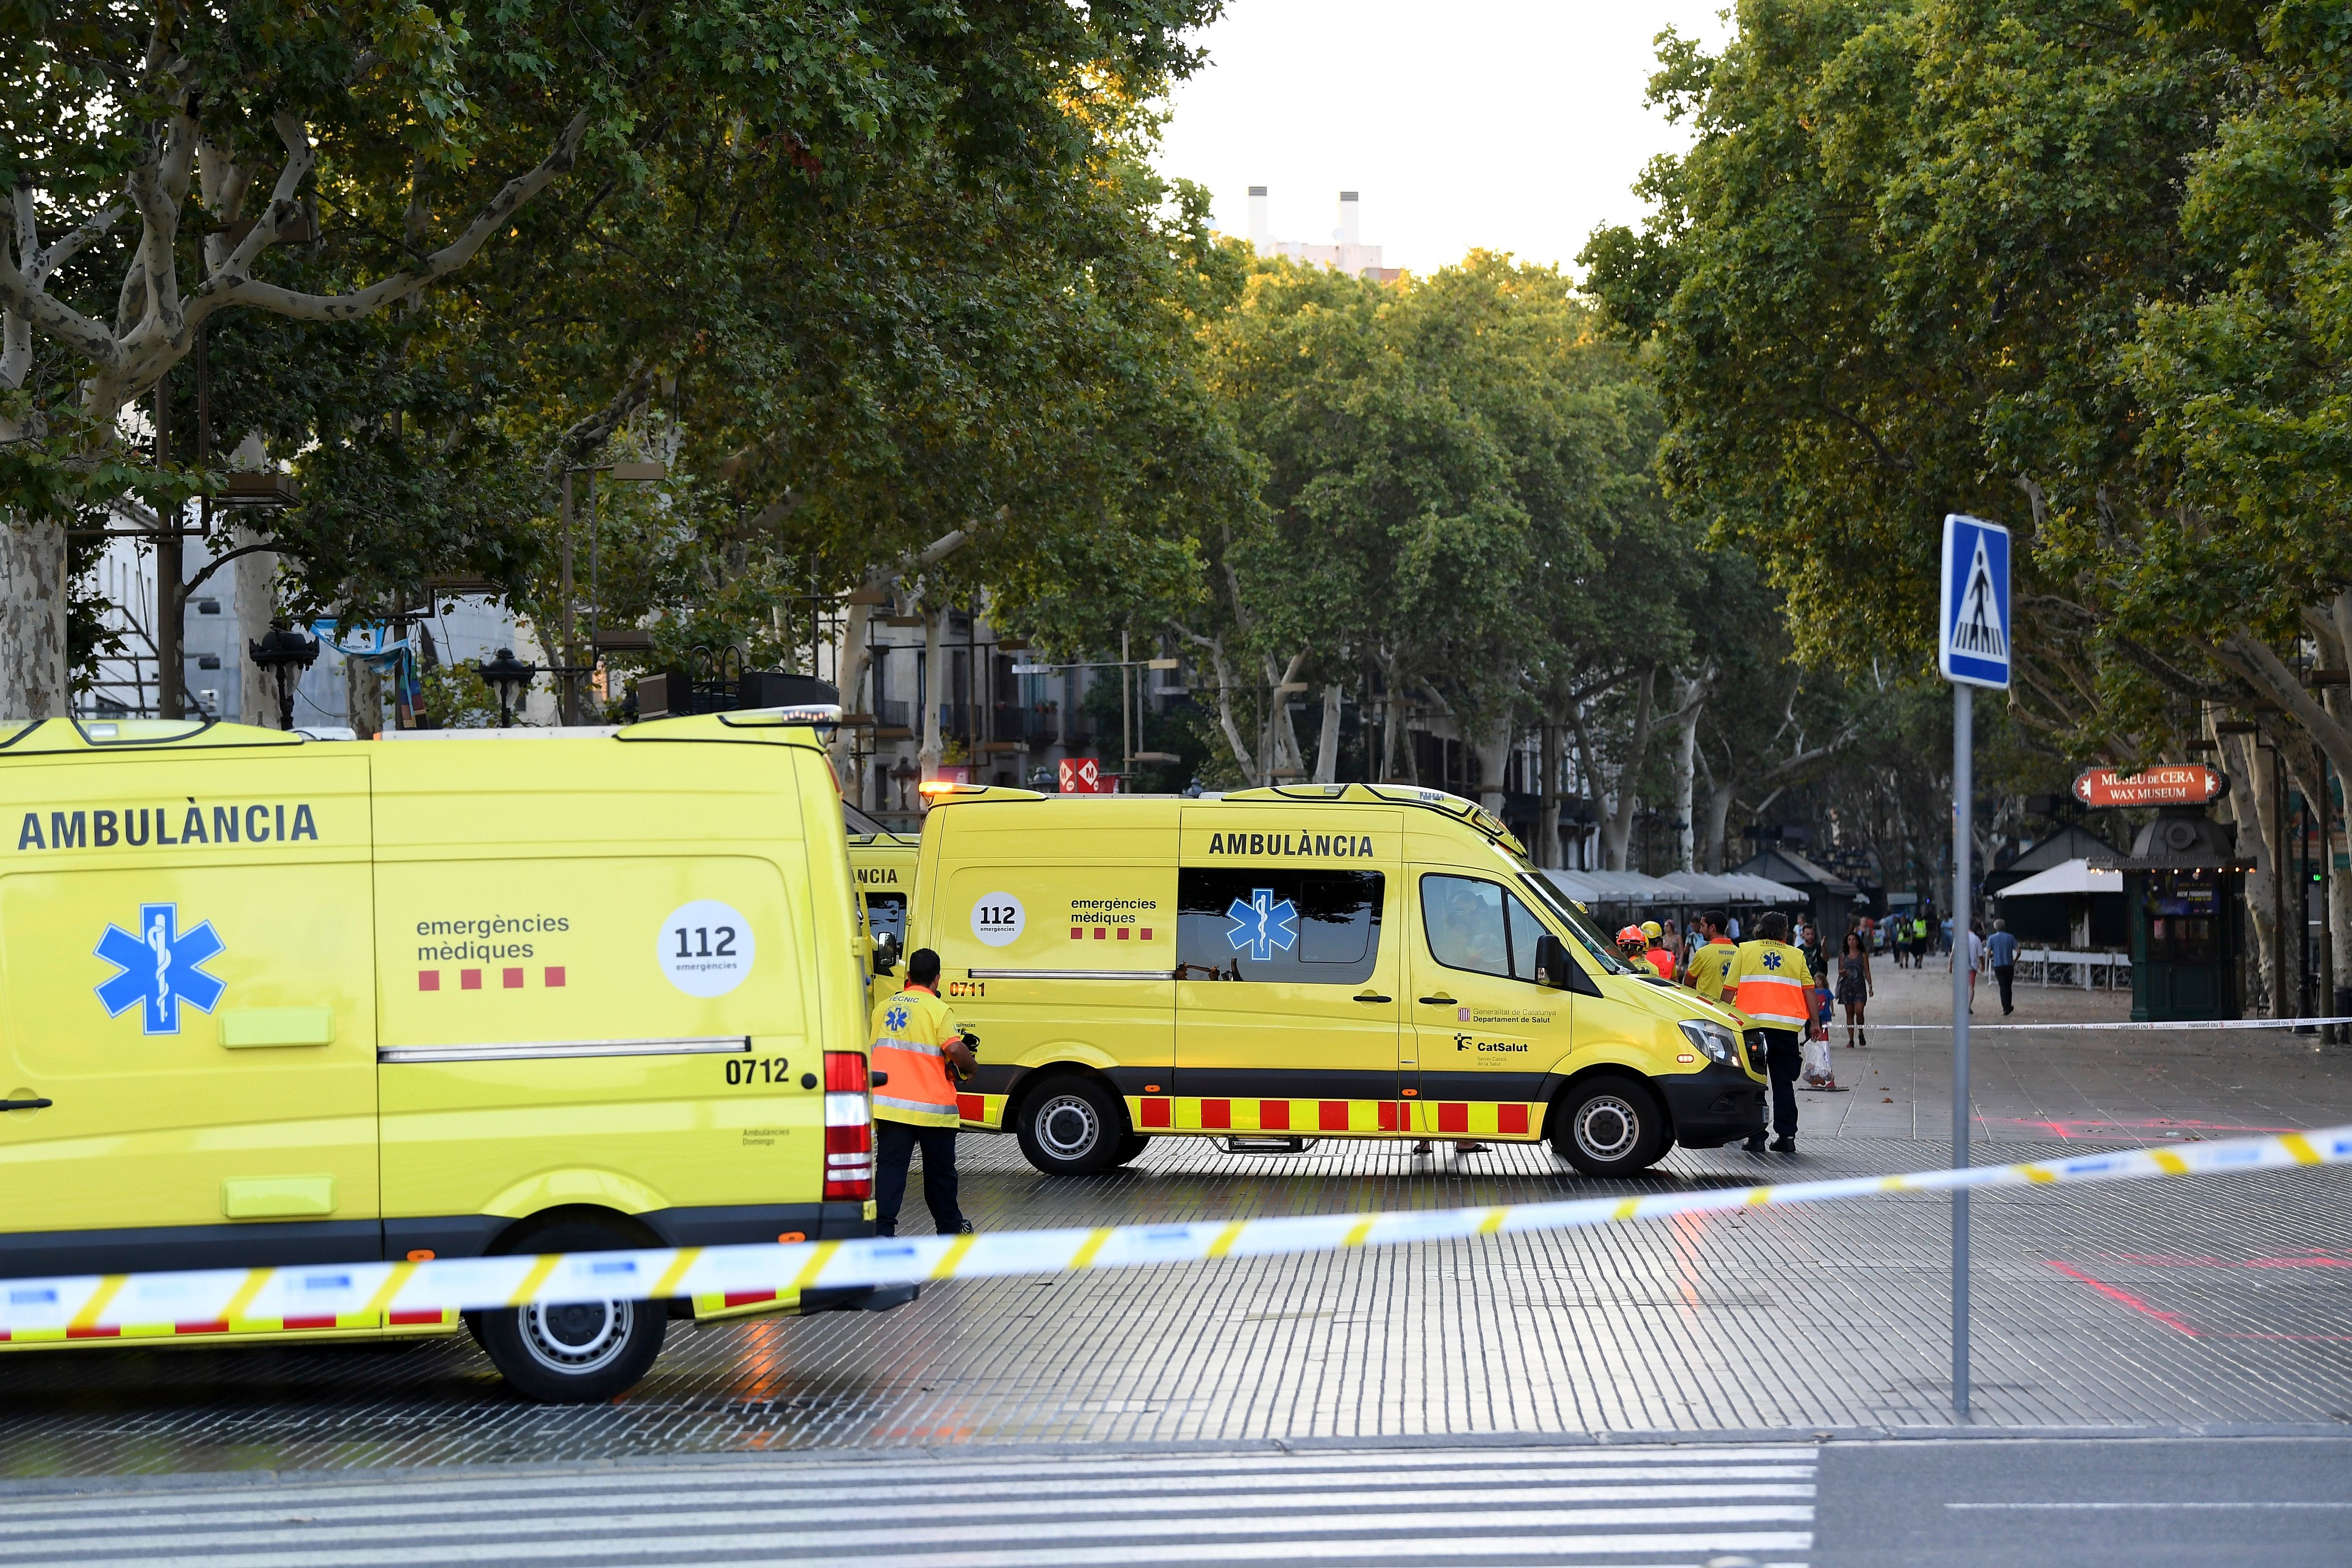 BARCELONA, SPAIN - AUGUST 17: A general view of ambulances at the scene of a terrorist attack in the Las Ramblas area on August 17, 2017 in Barcelona, Spain. Officials say 13 people are confirmed dead and at least 50 injured after a van plowed into people in the Las Ramblas area of the city this afternoon. (Photo by David Ramos/Getty Images)